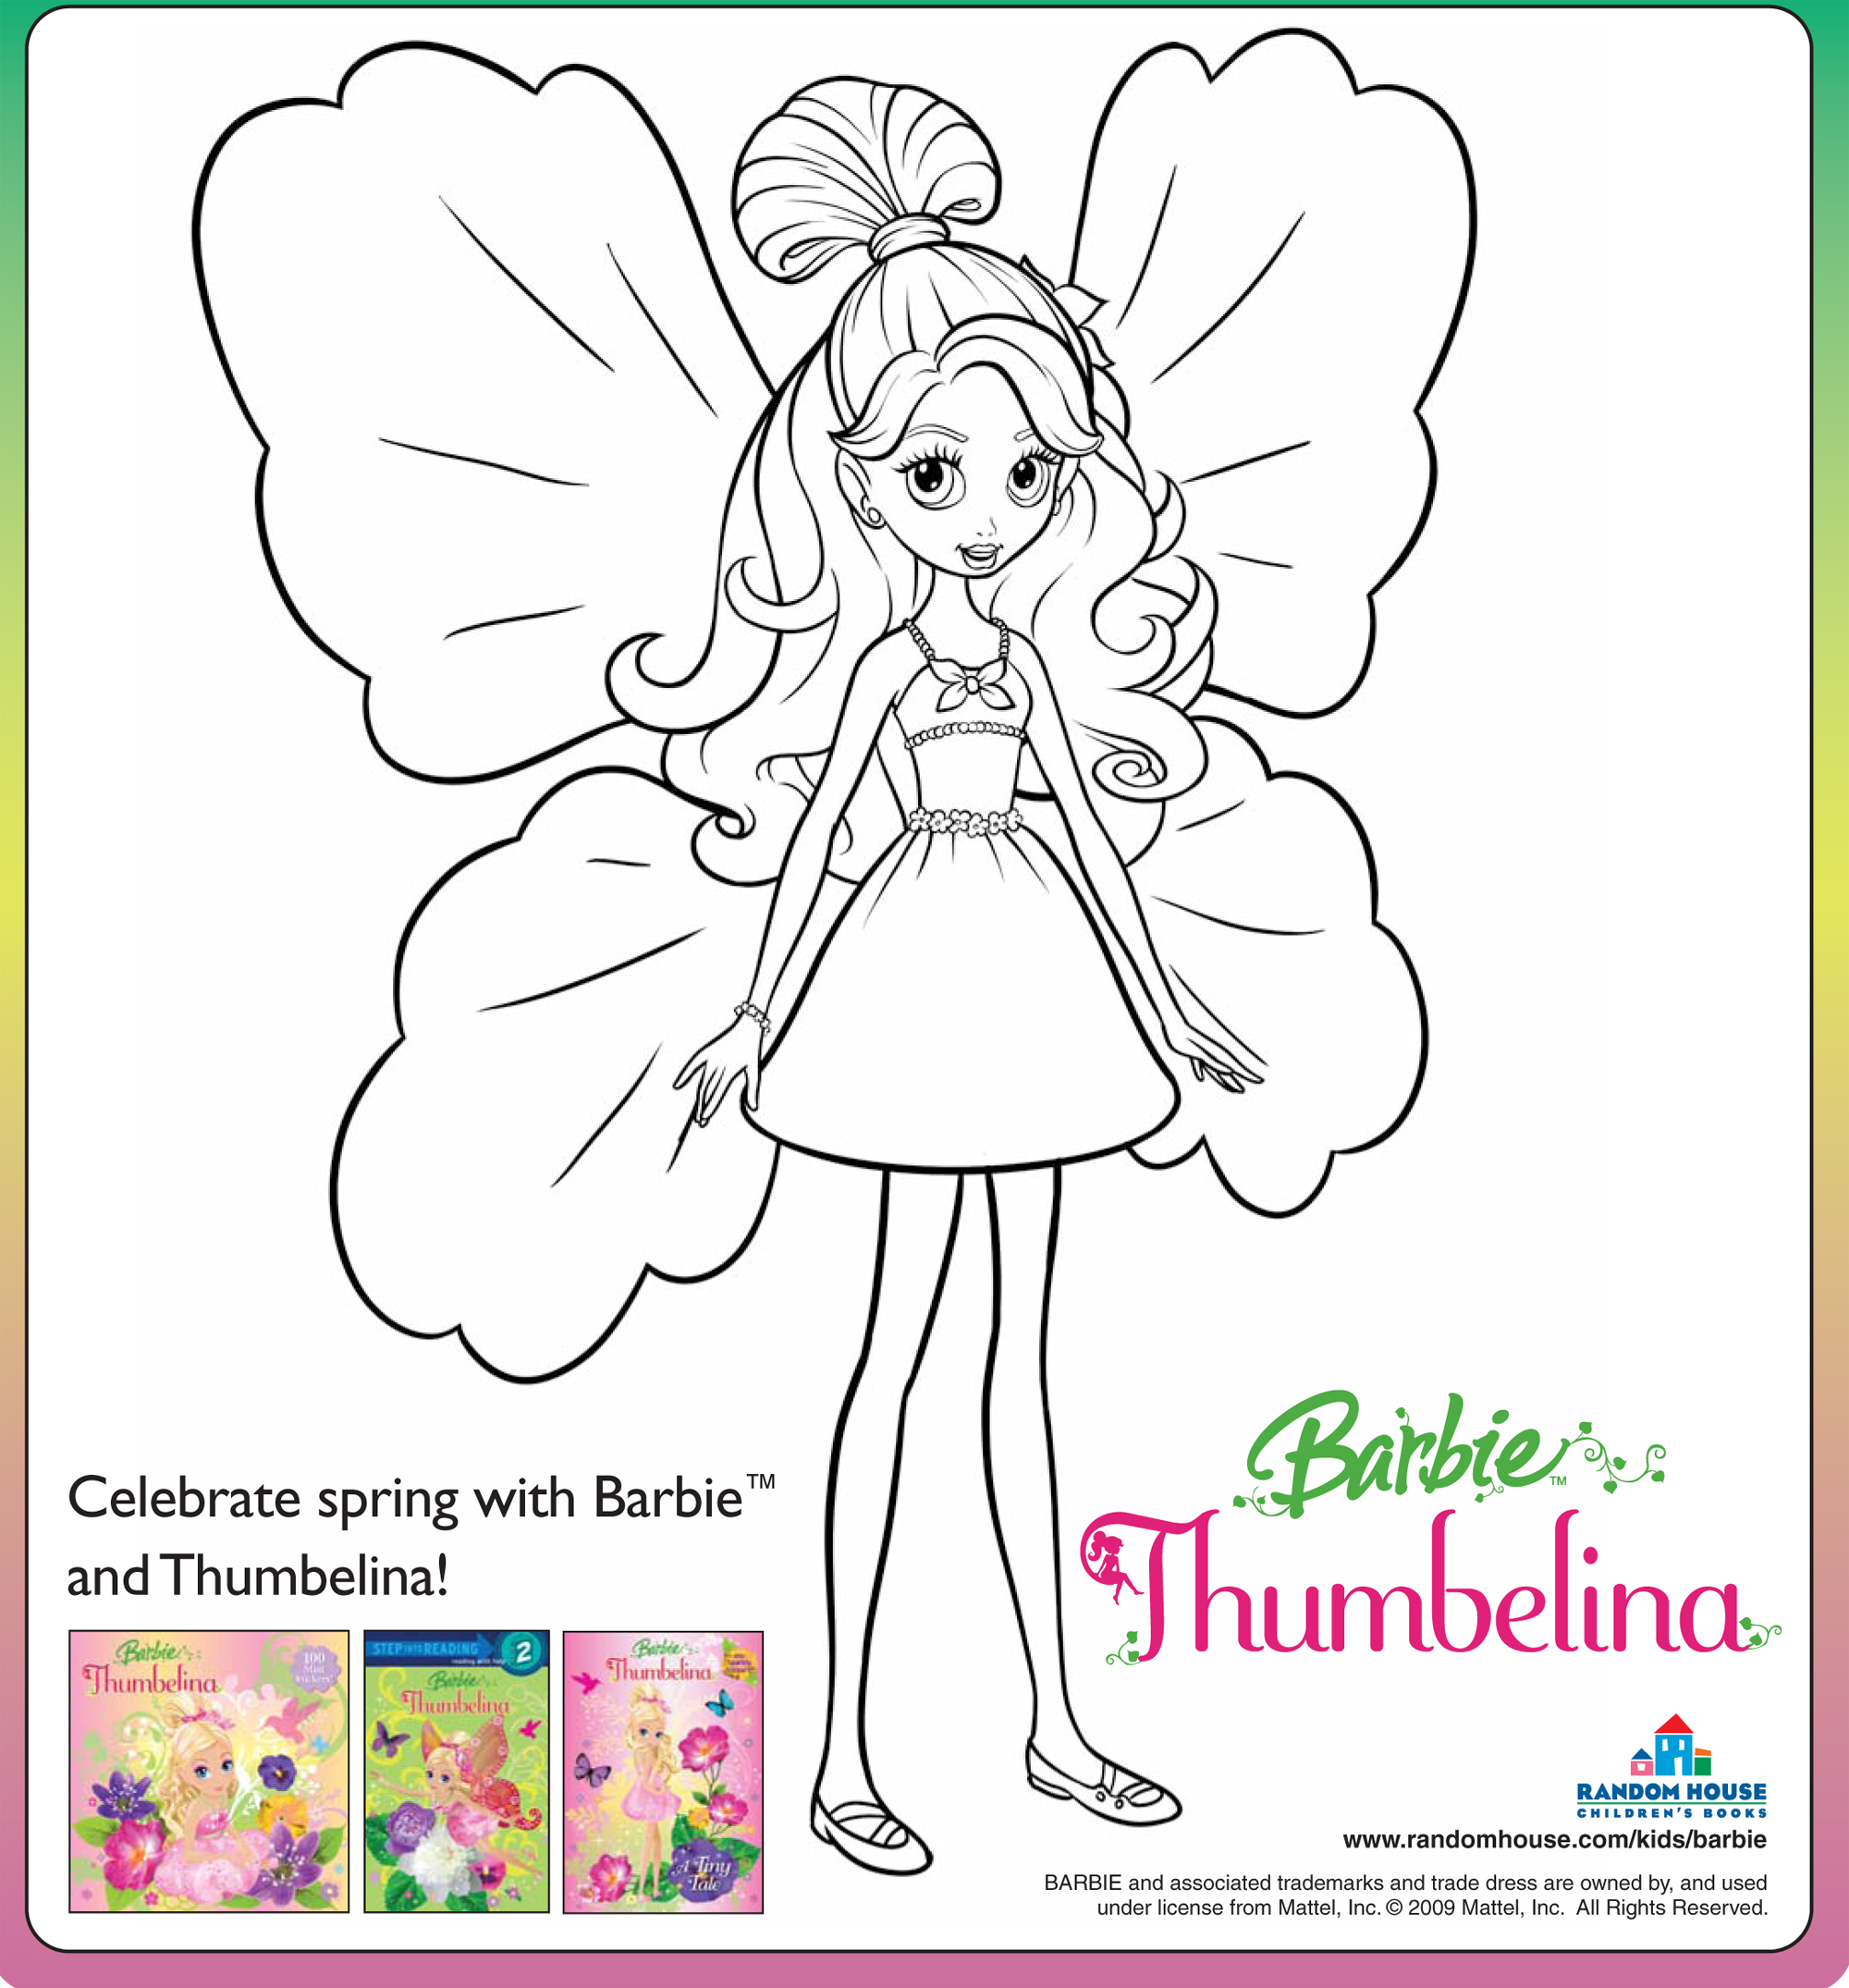 barbie thumbelina free coloring pages - photo#32